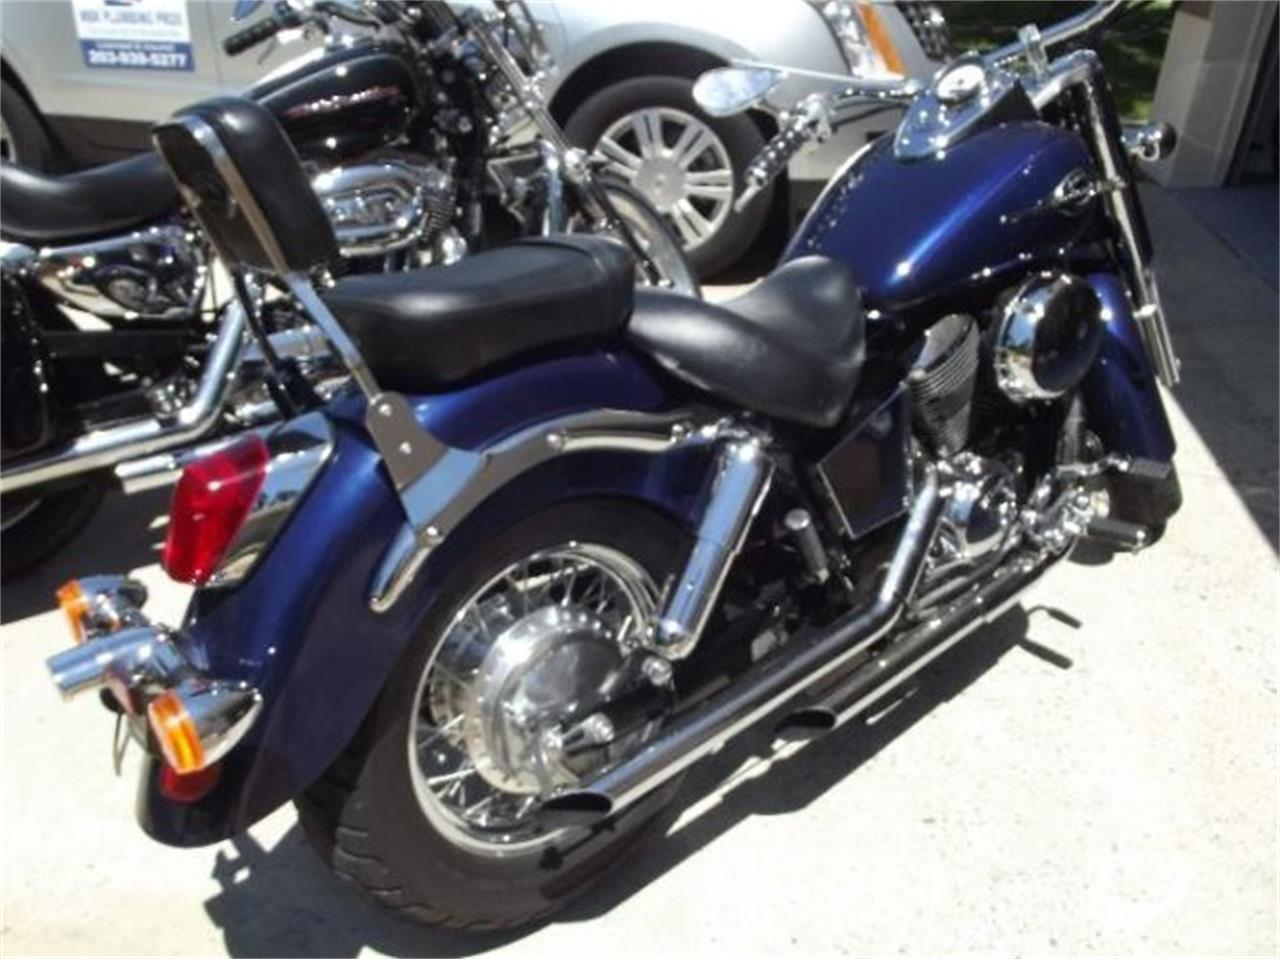 2002 Honda Motorcycle (CC-1272343) for sale in Cadillac, Michigan